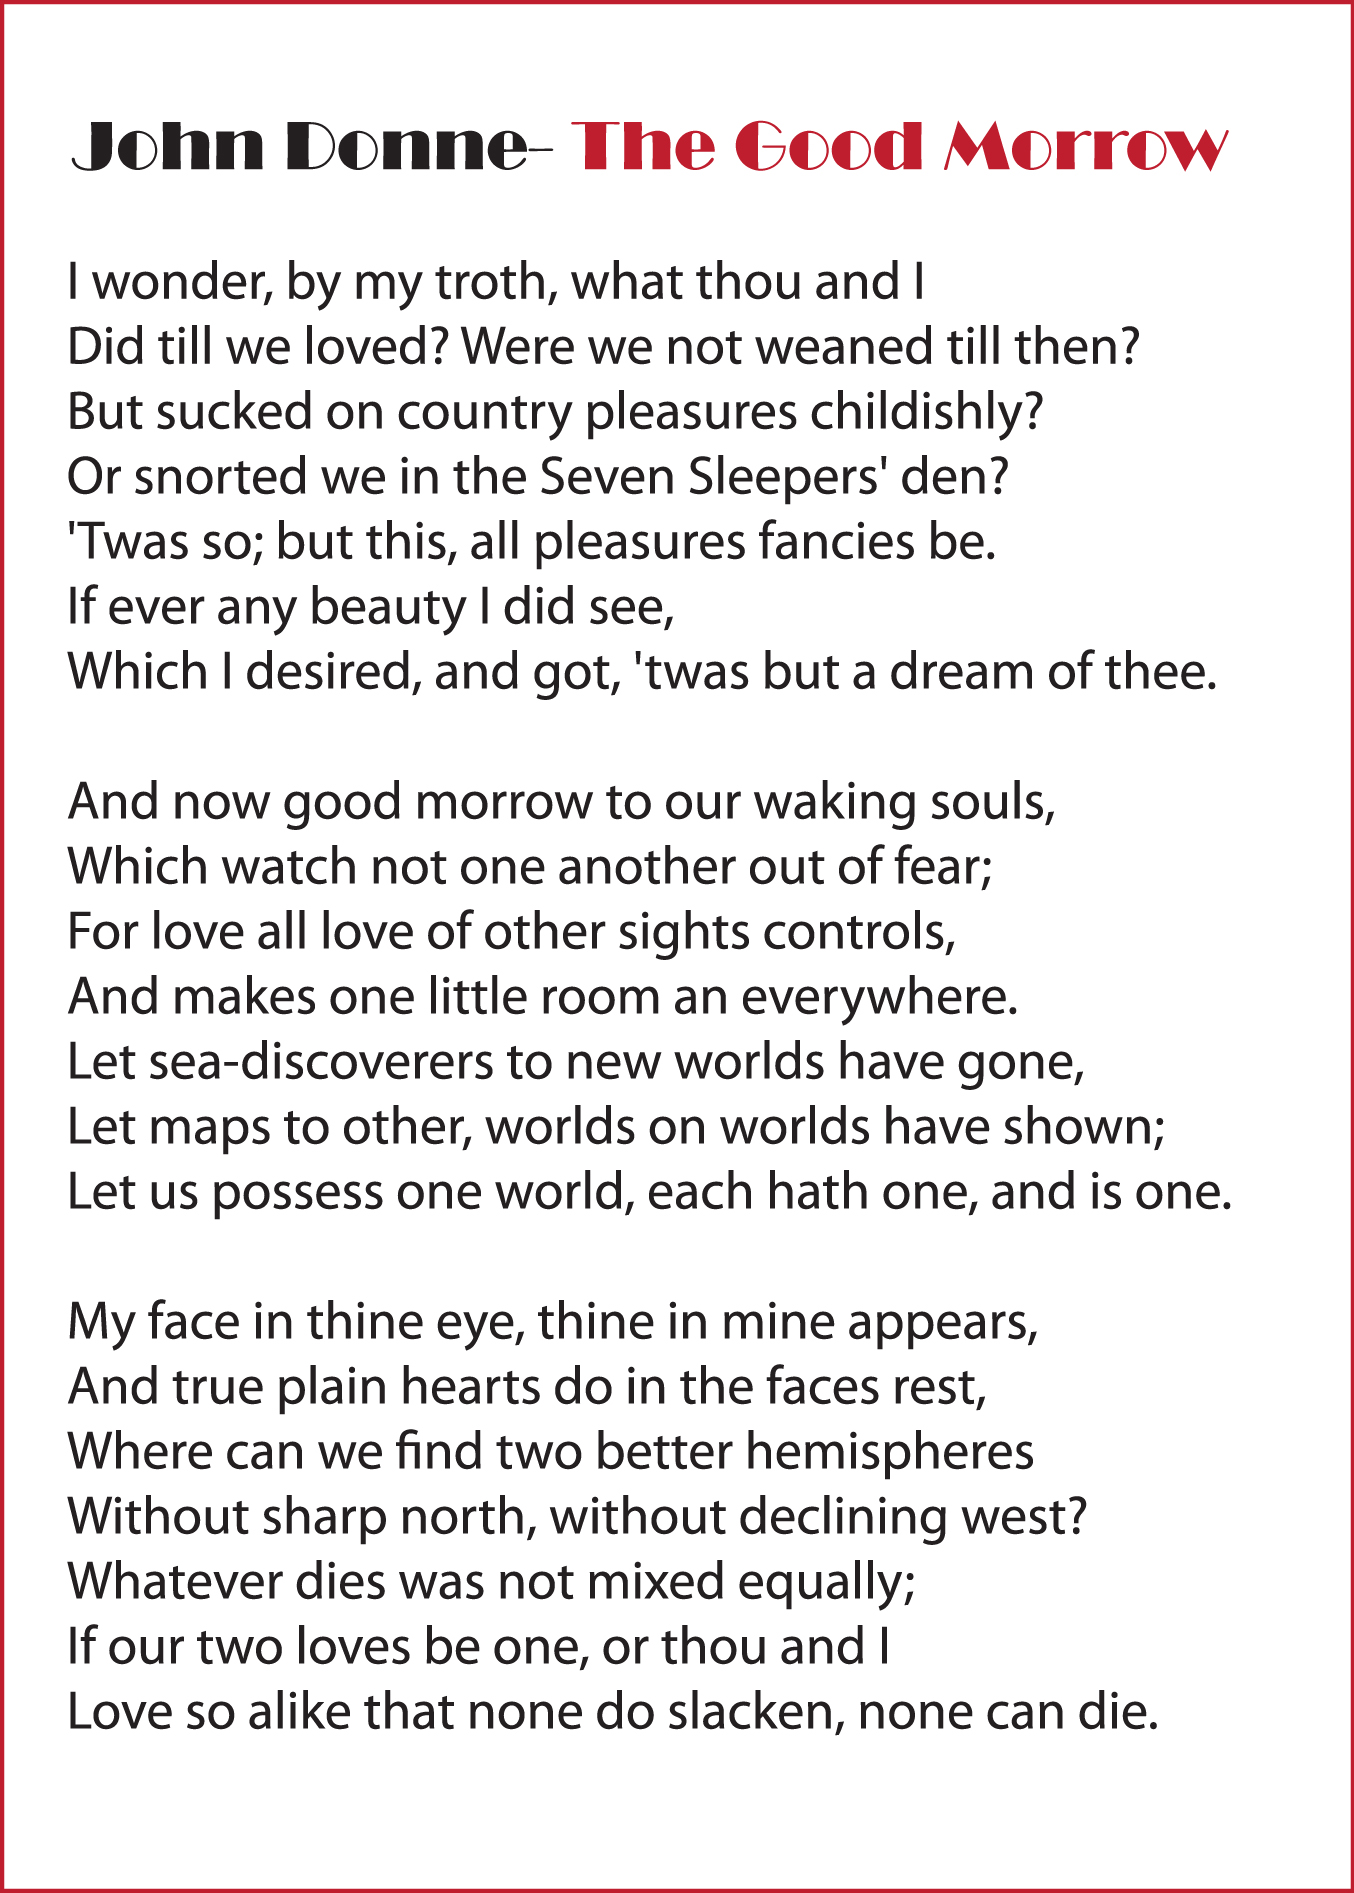 the good morrow 'the good morrow' is a typical donnian love poem, divided into three stanzas it's one of those love poems in which he praises the spiritual relationship between men and women and hails it so ardently.